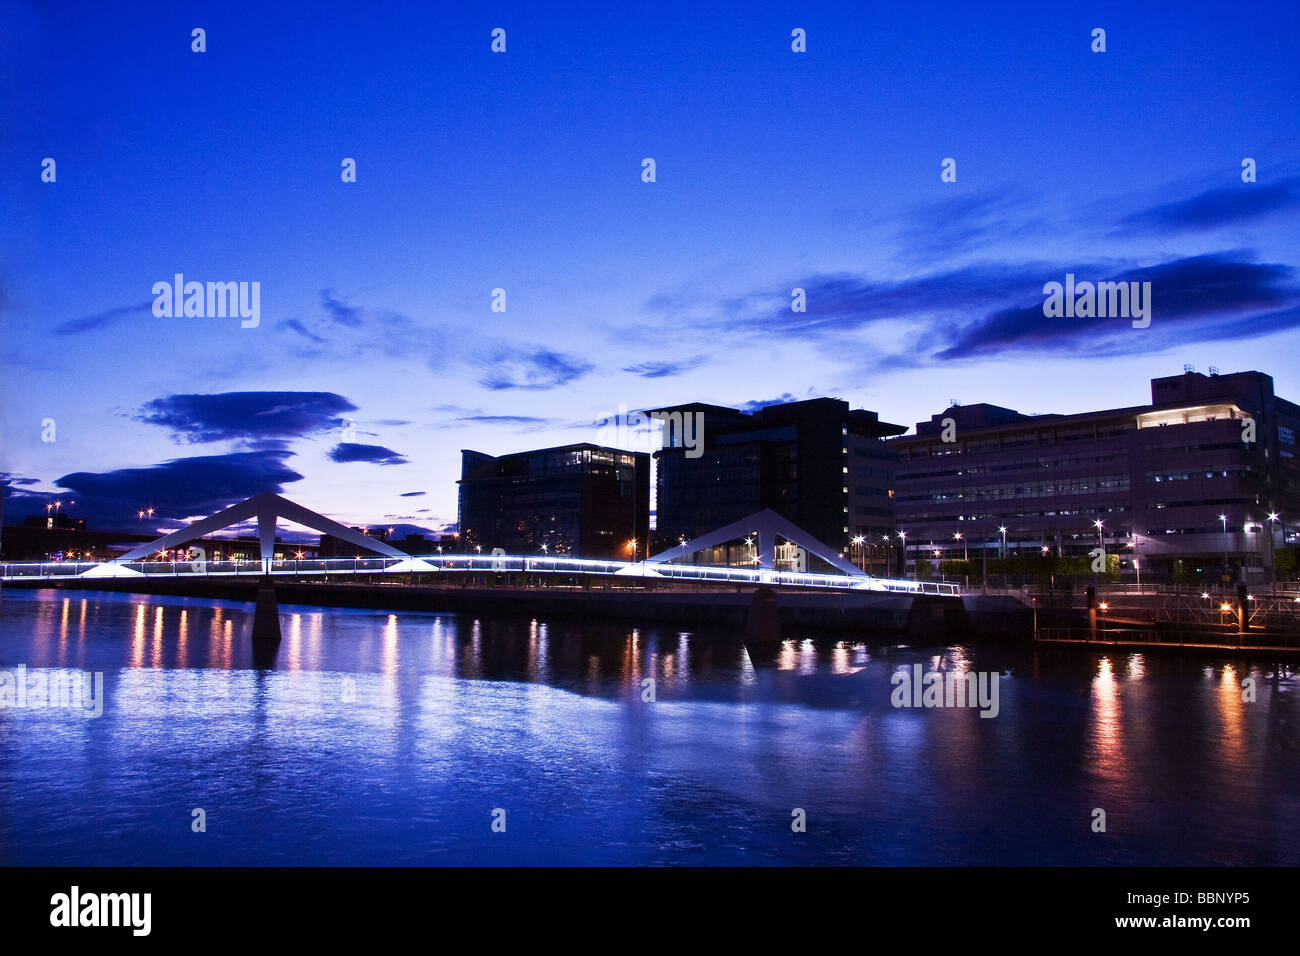 Tradeston Squiggly Bridge take at night connecting the Financial District of Glasgow City Centre with the southside. - Stock Image